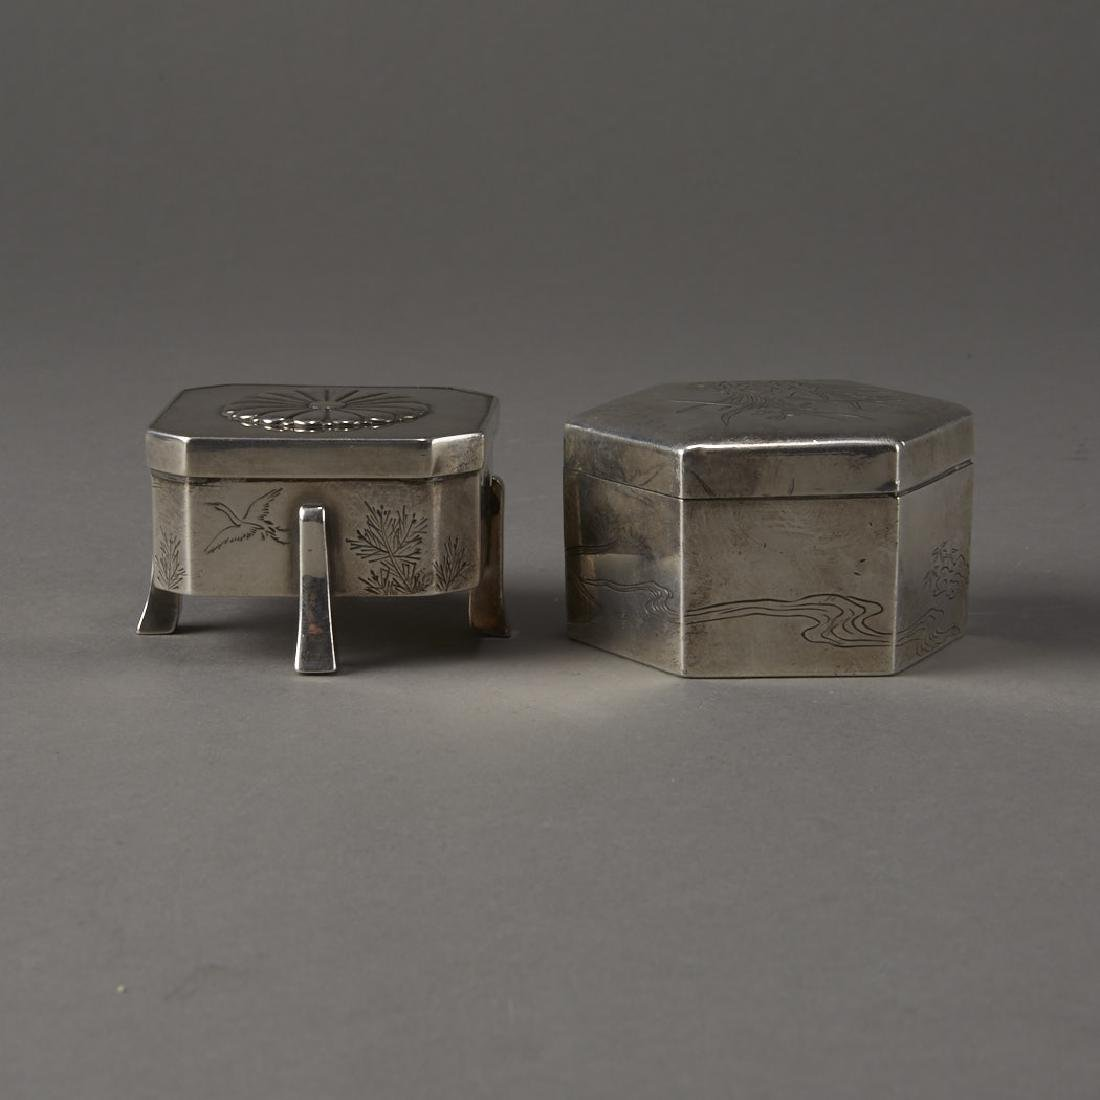 Japanese 20th C. Silver Boxes Decoration - 3